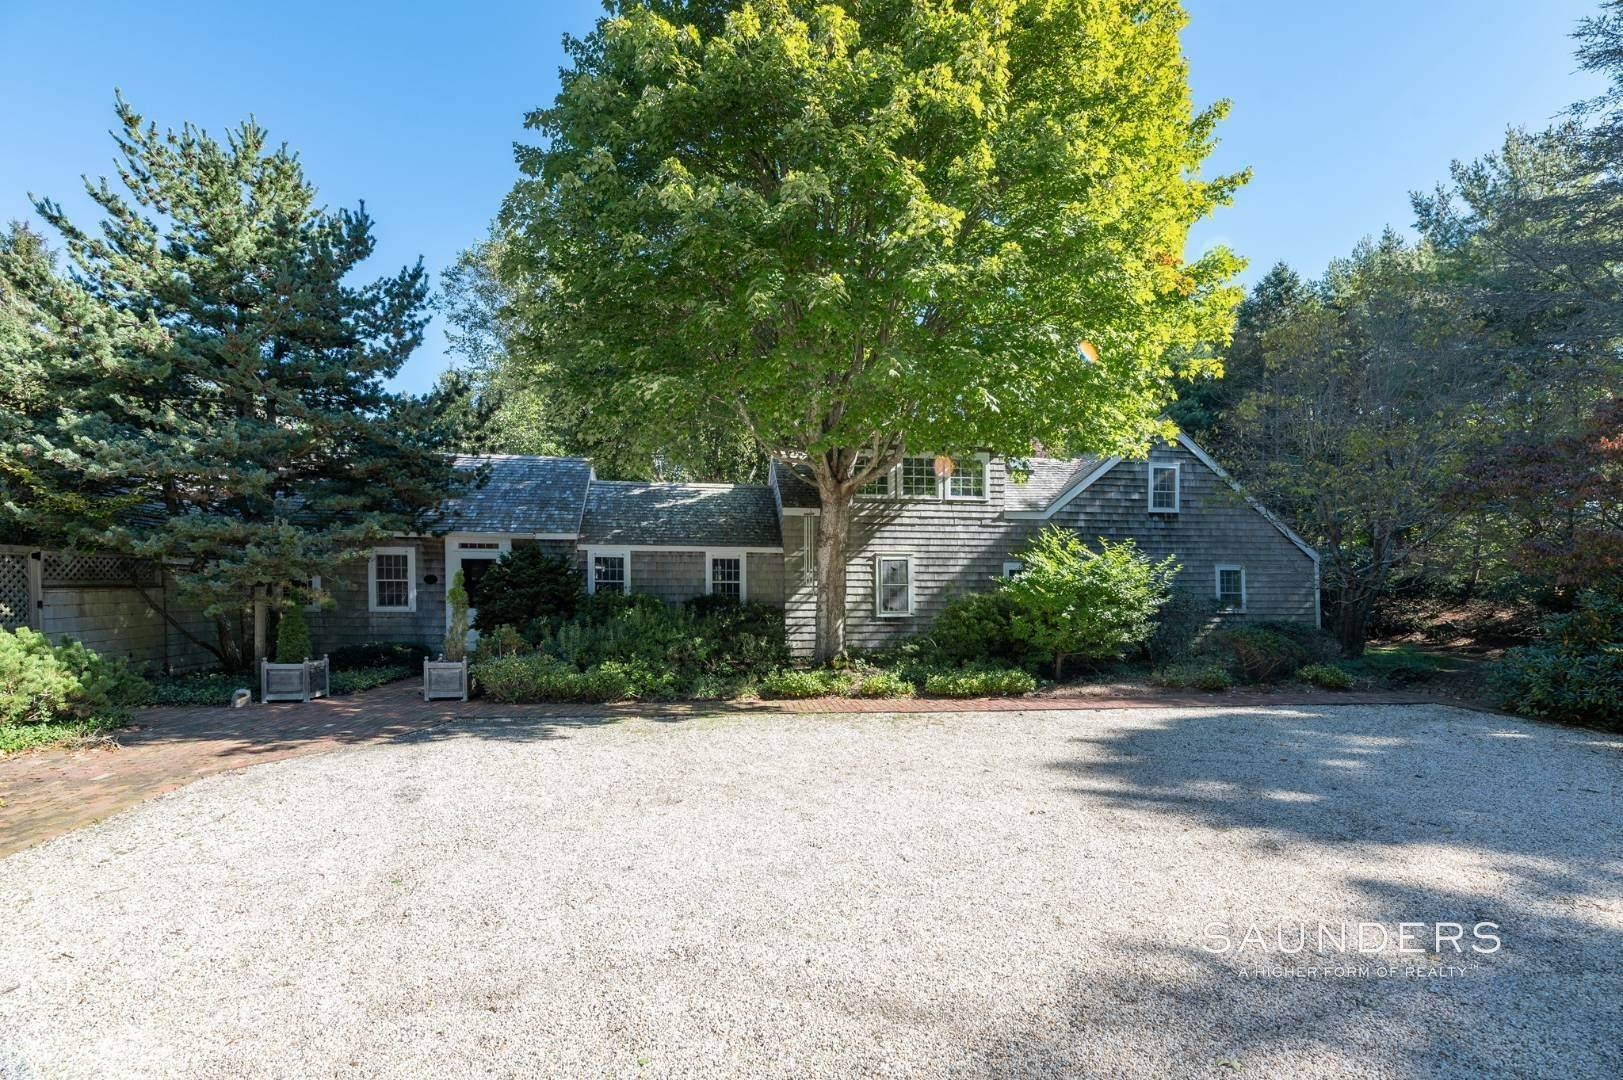 Single Family Homes for Sale at Historic House In Quogue 115 Montauk Highway, Quogue Village, Southampton Town, NY 11942